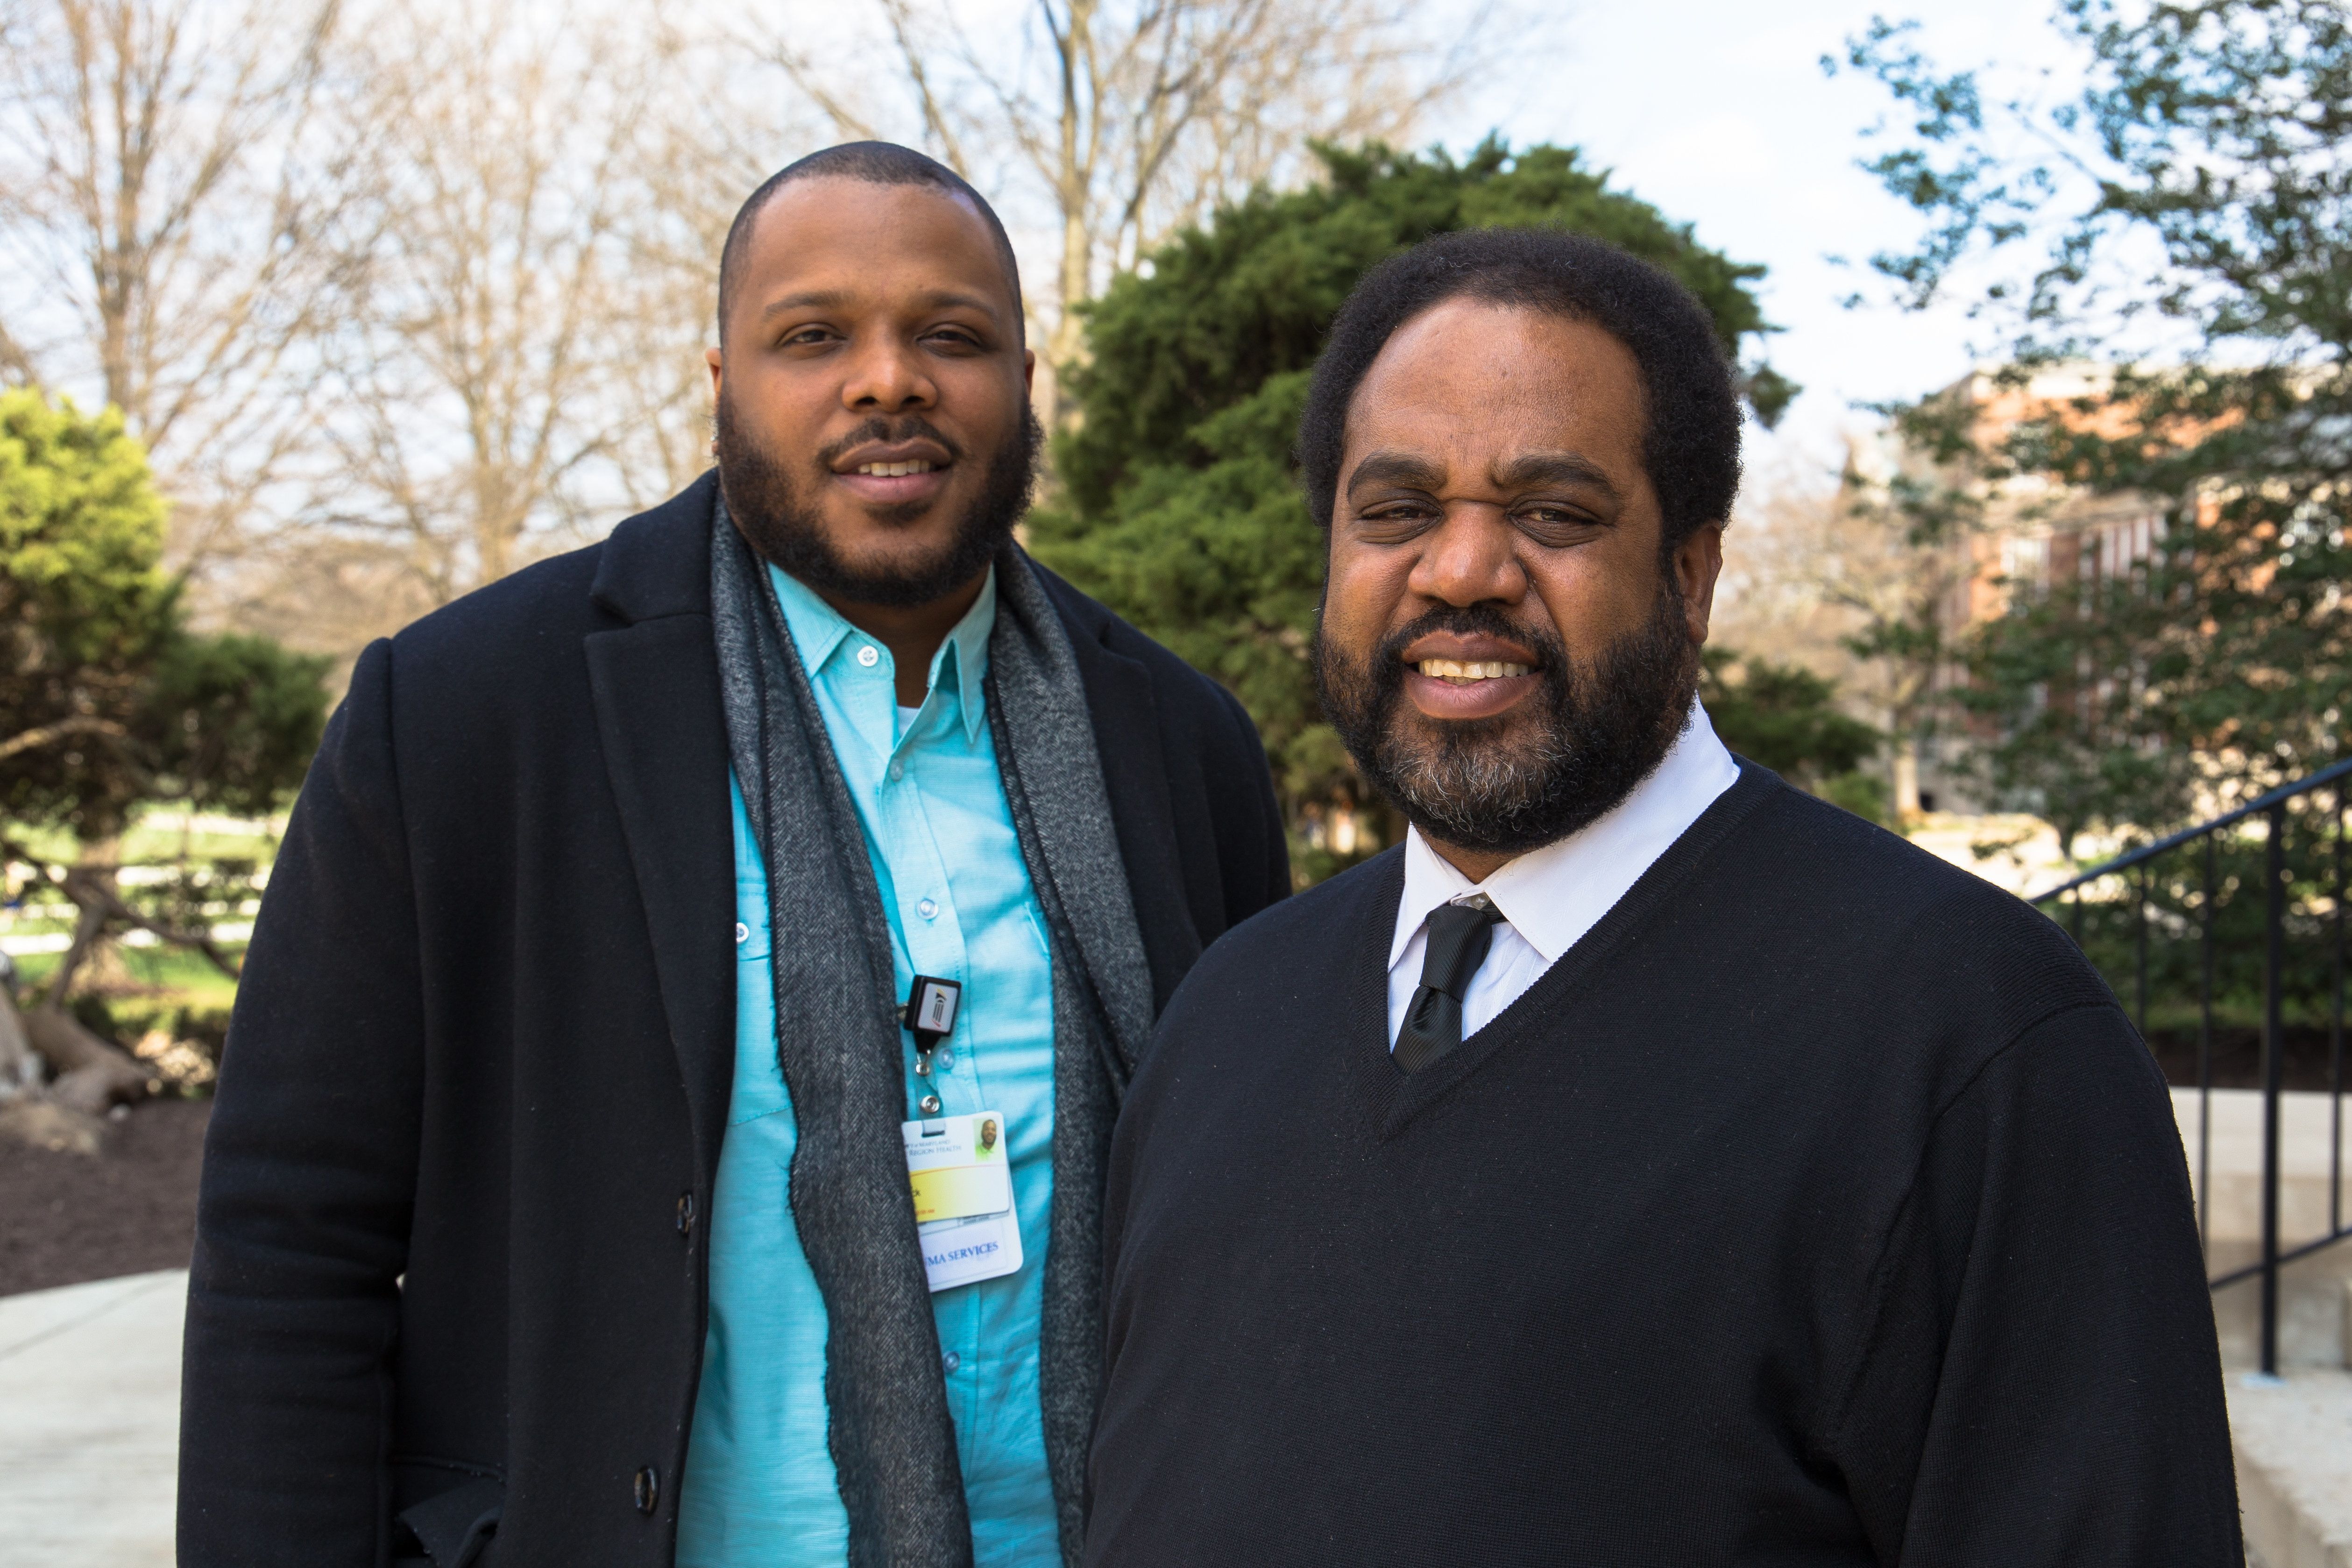 Che Bullock, left, and Joseph Richardson Jr. are helping patients find a path away from violence through their work at t